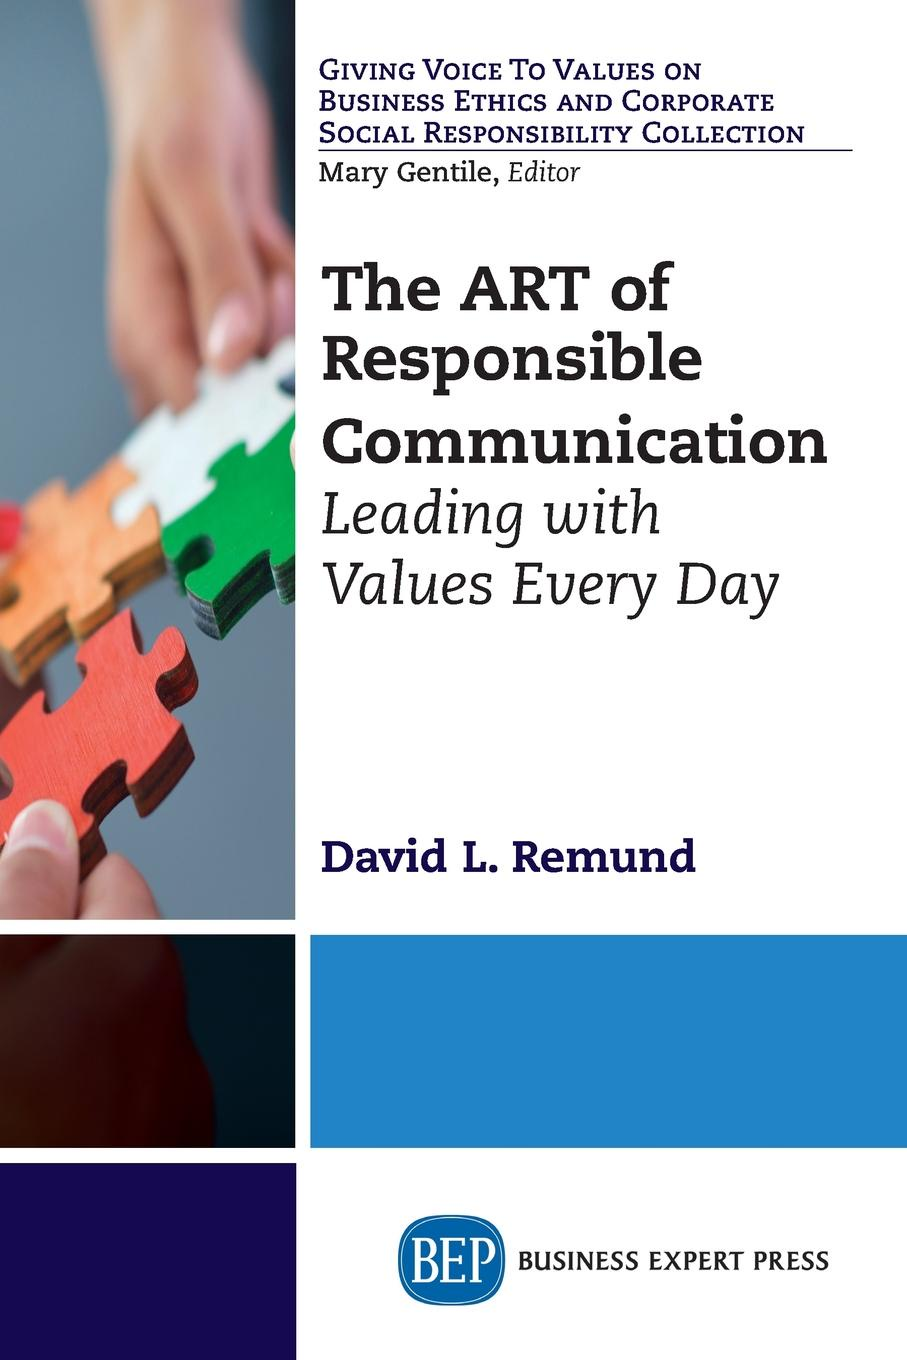 David L. Remund The ART of Responsible Communication. Leading with Values Every Day lee bolman g how great leaders think the art of reframing